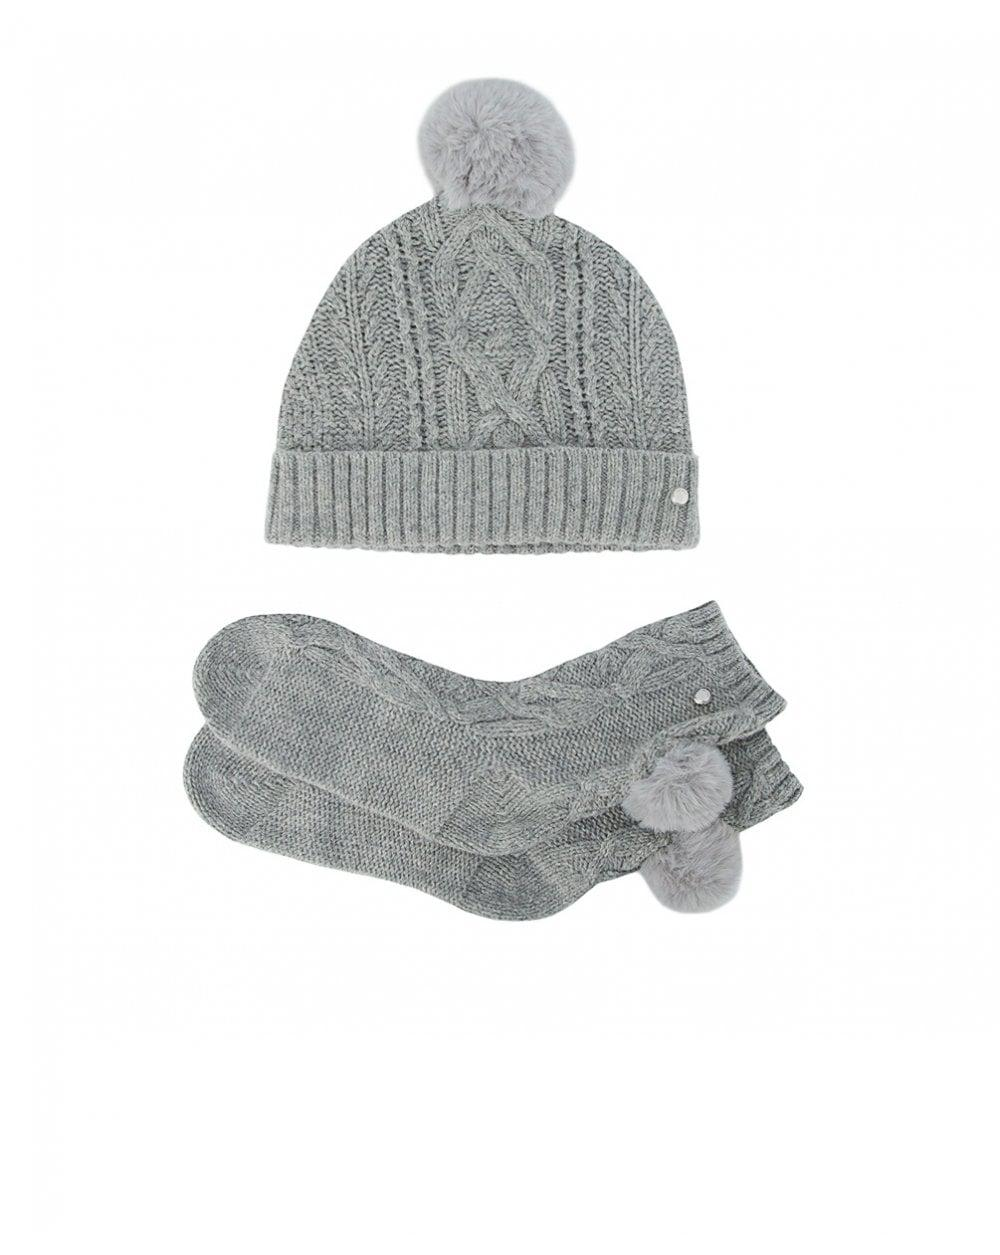 Ted Baker Raisa Knitted Pom Pom Hat And Sock Set in Gray - Lyst c3d728501a83